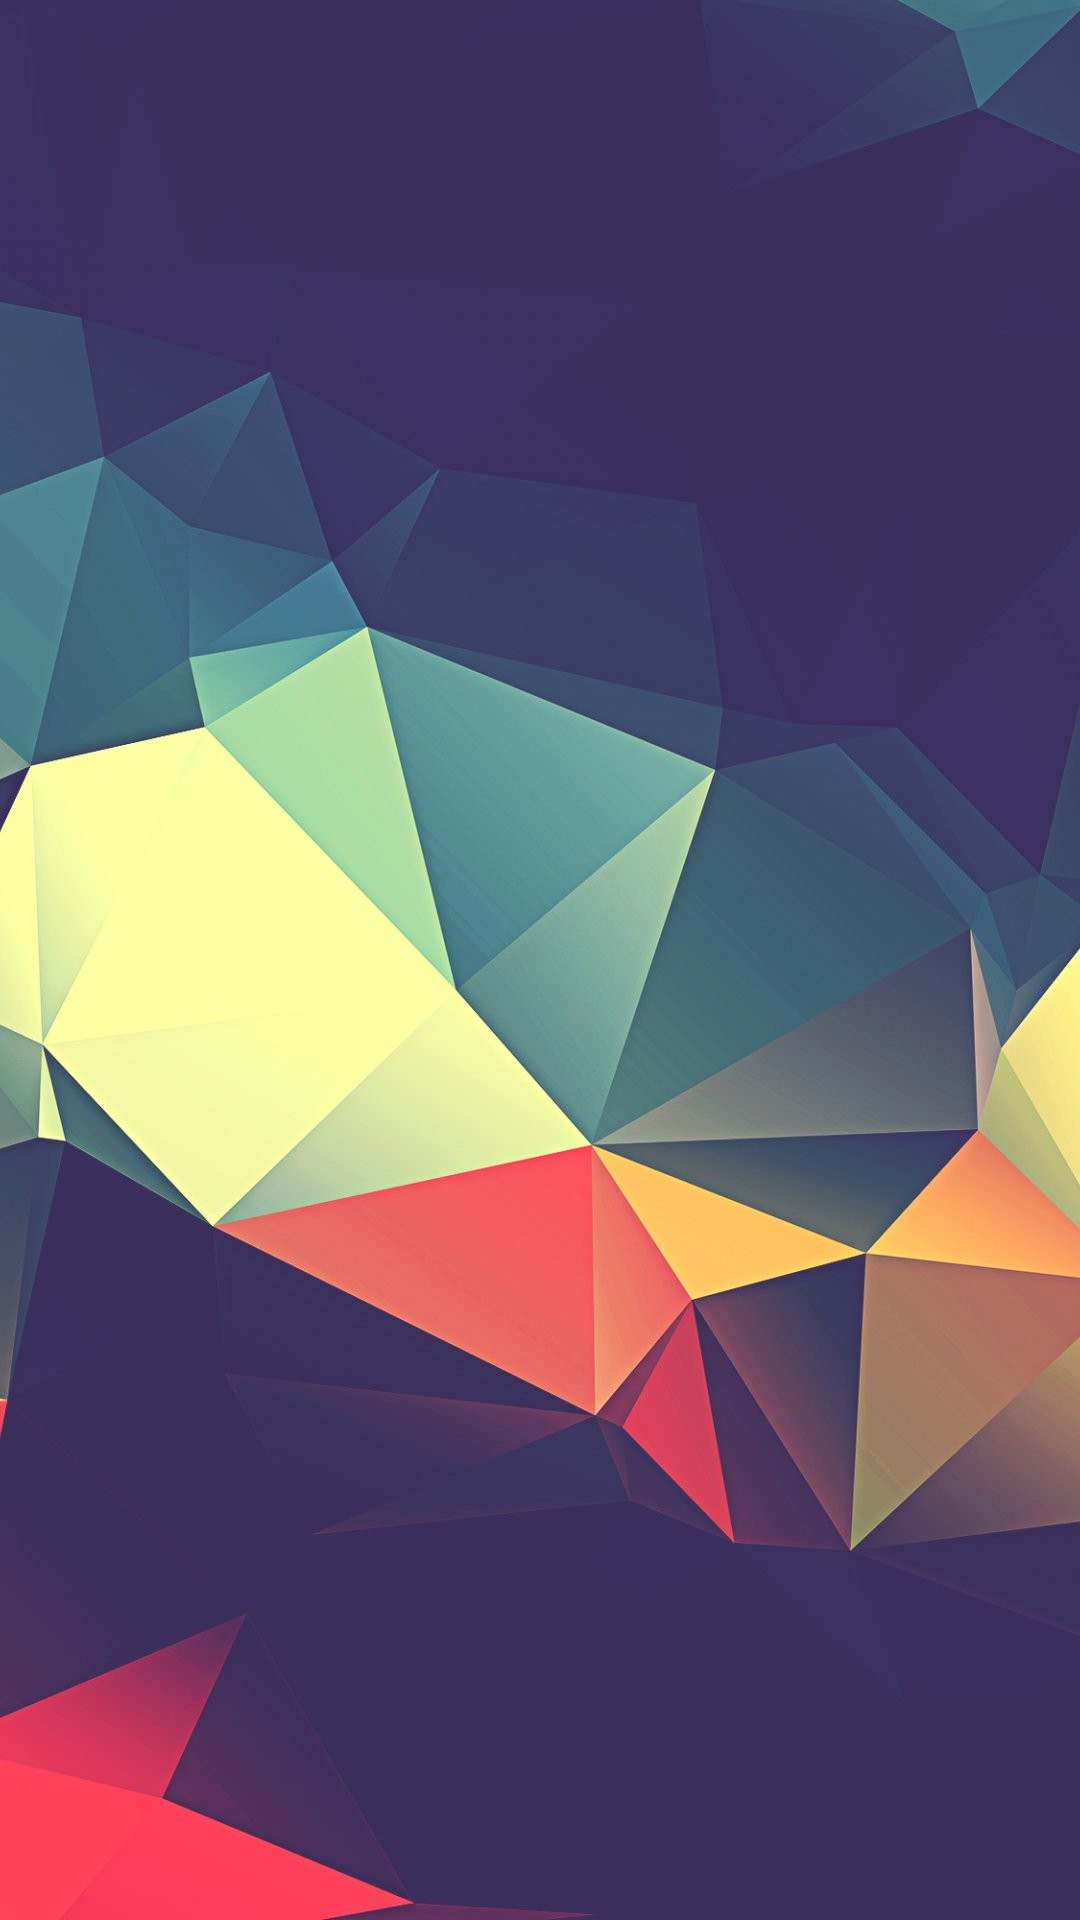 Low Poly iPhone 6 Plus Wallpaper 35941 – Abstract iPhone 6 Plus Wallpapers